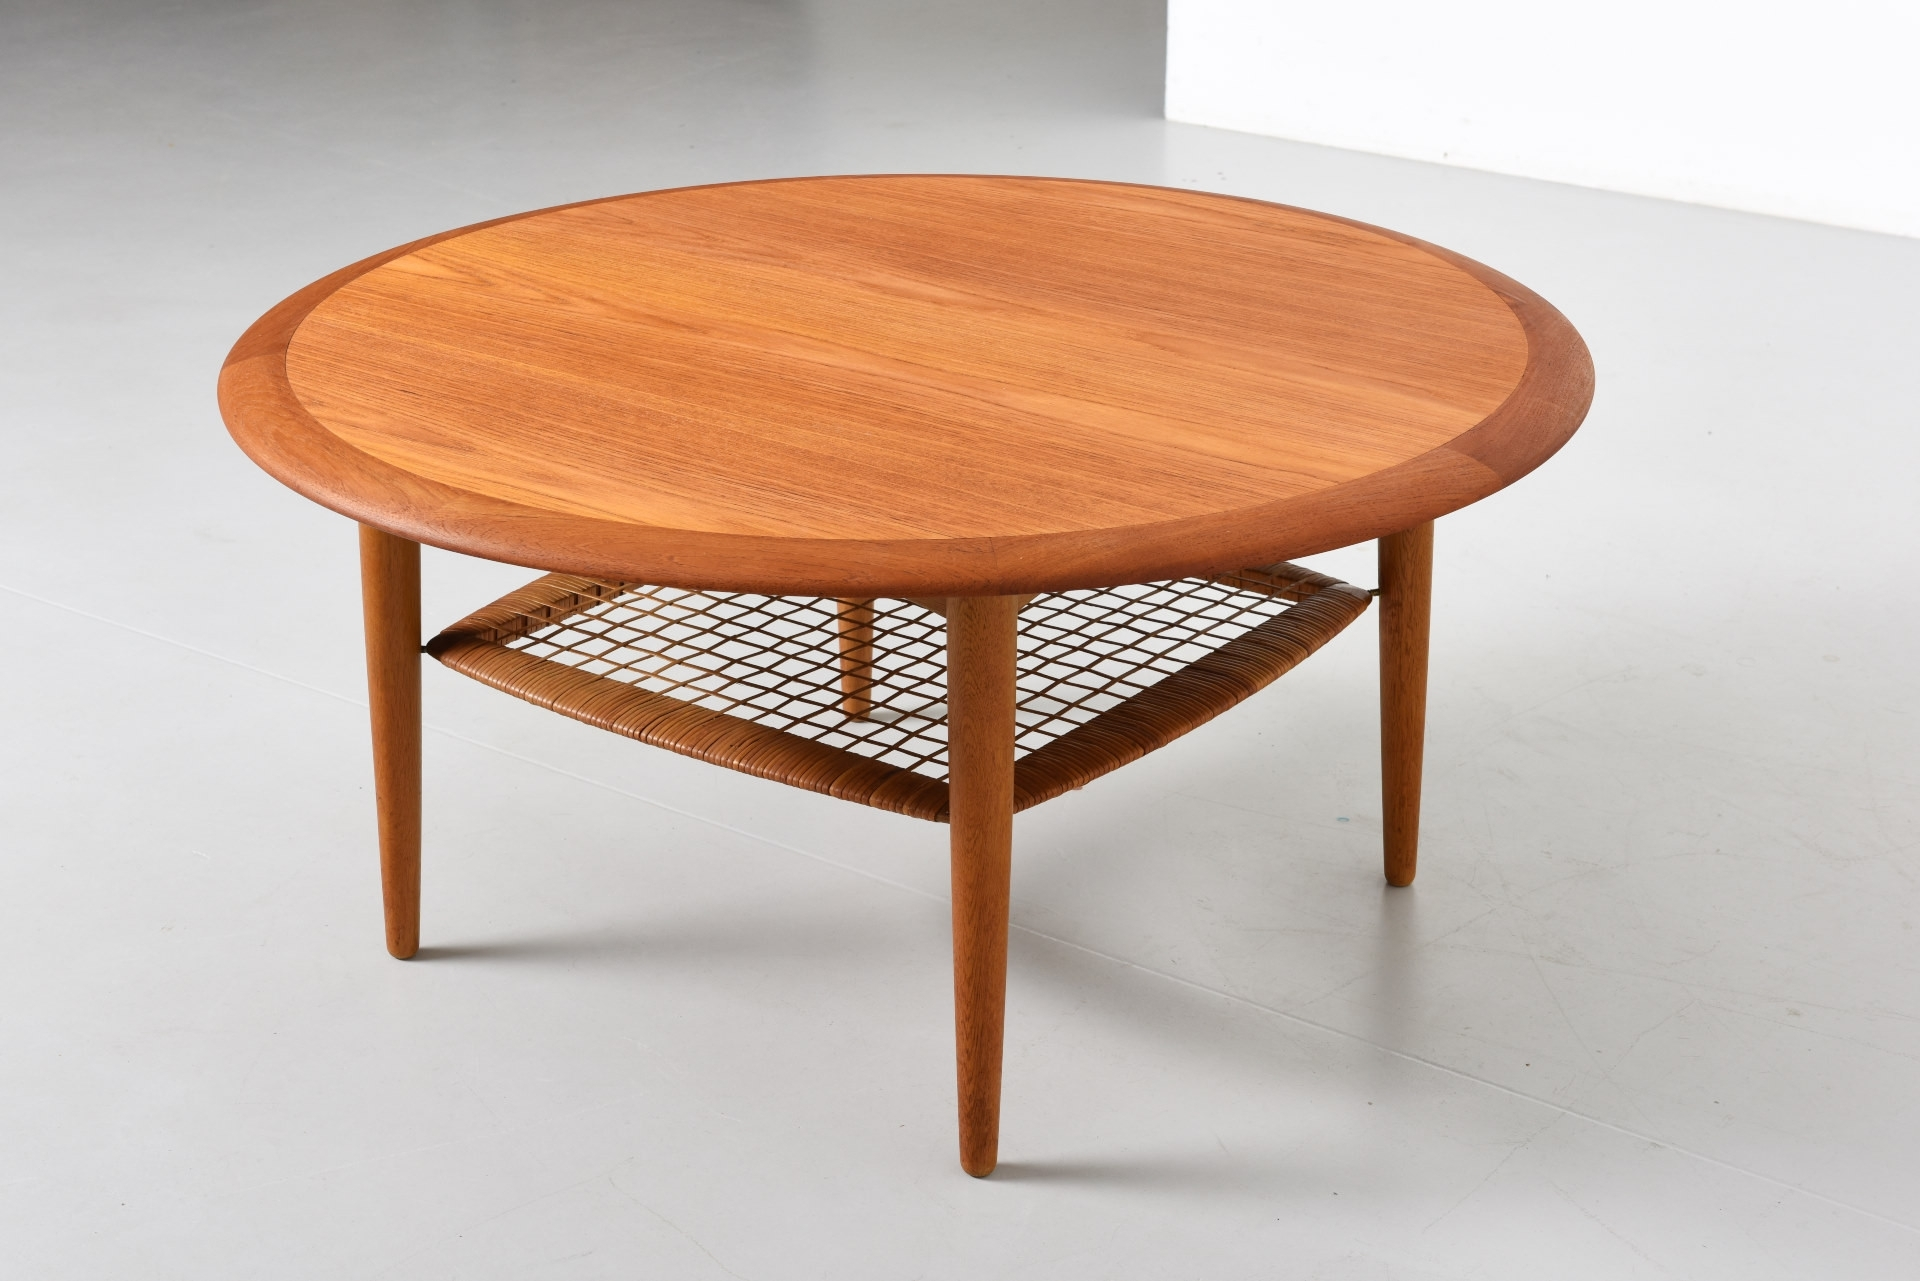 Creative Round Coffee Table With Shelf For Seagrass Coffee Table with regard to Round Teak Coffee Tables (Image 6 of 30)